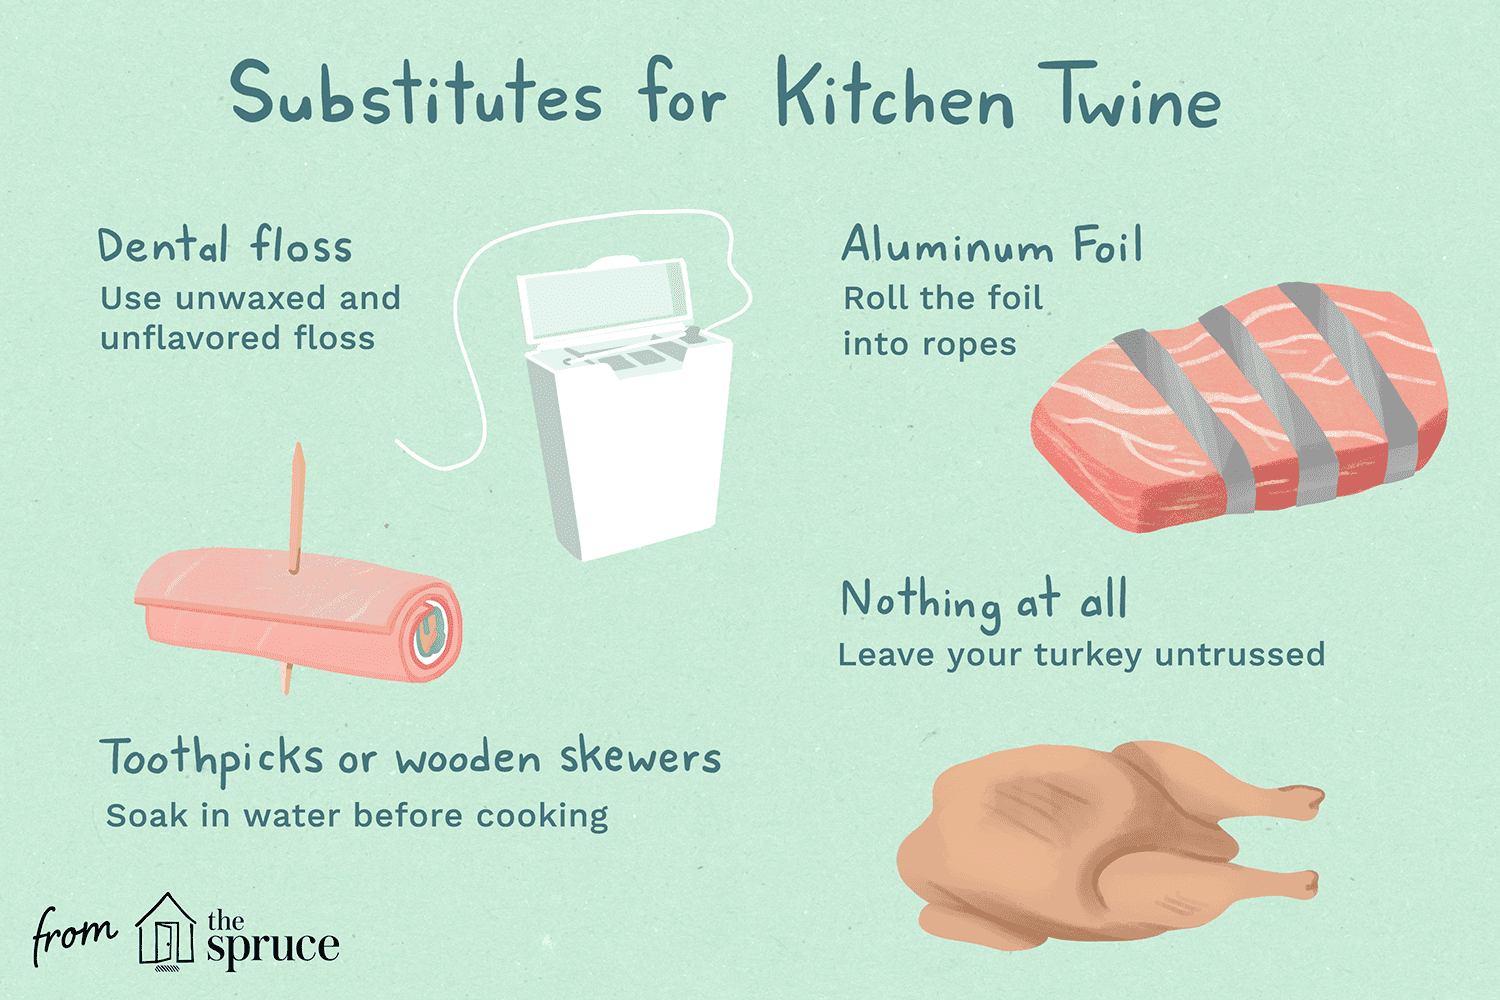 illustration showing substitutes for kitchen twine